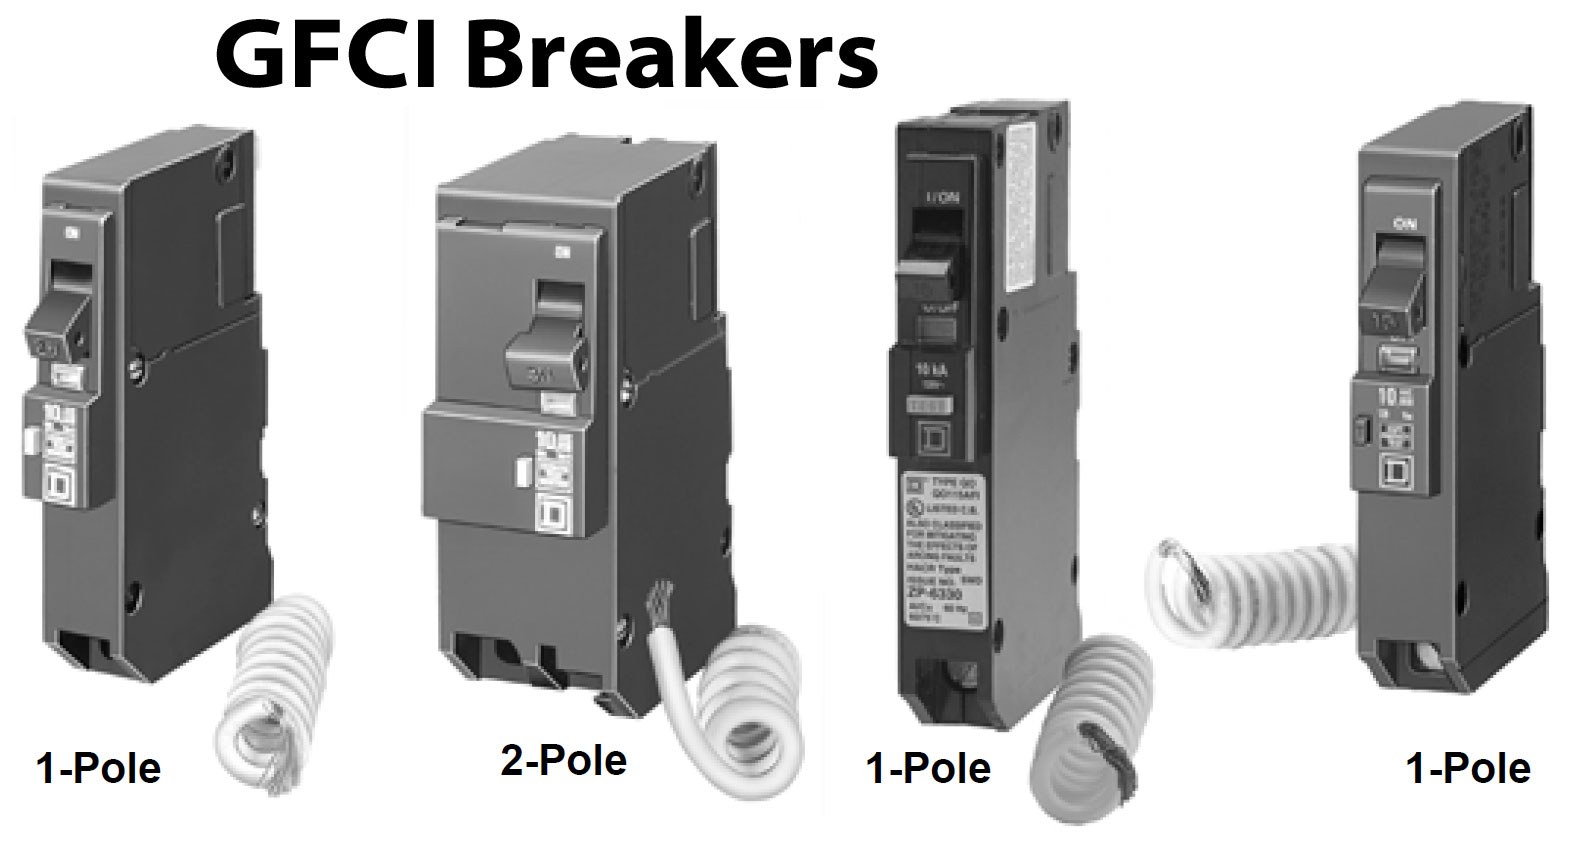 GFCI breakers 1000 how to install and troubleshoot gfci eaton gfci breaker wiring diagram at metegol.co